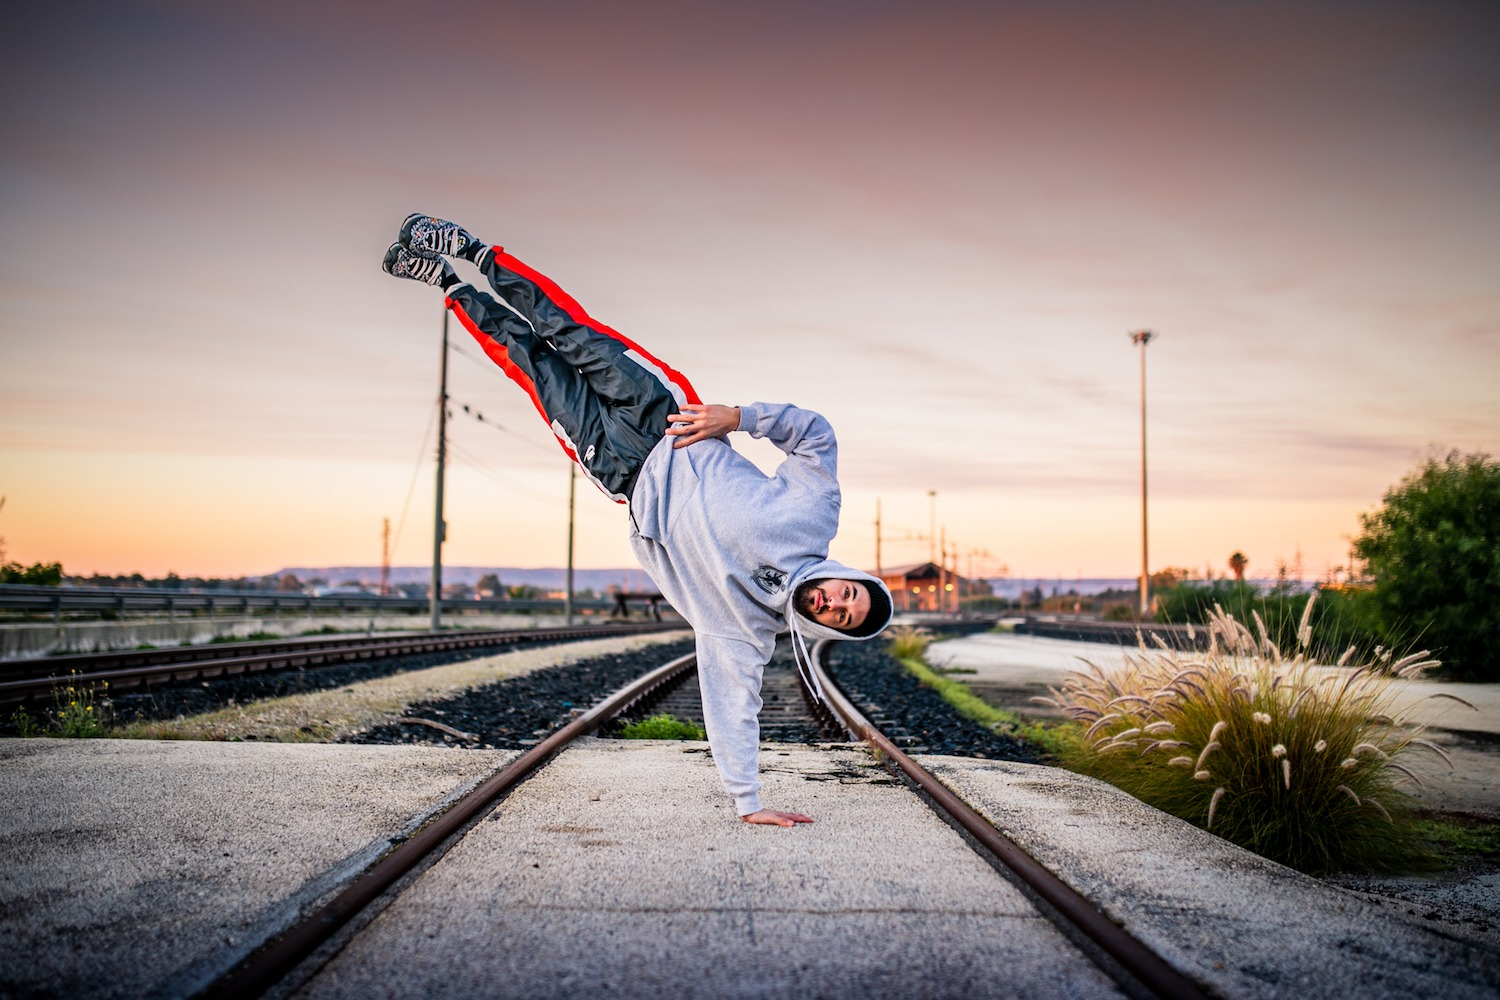 Hip hop crew Siracusa - roberto zampino fotografo Photographer redbull extreme photography sport fotografo commercial Sicily Siracusa Hiphop